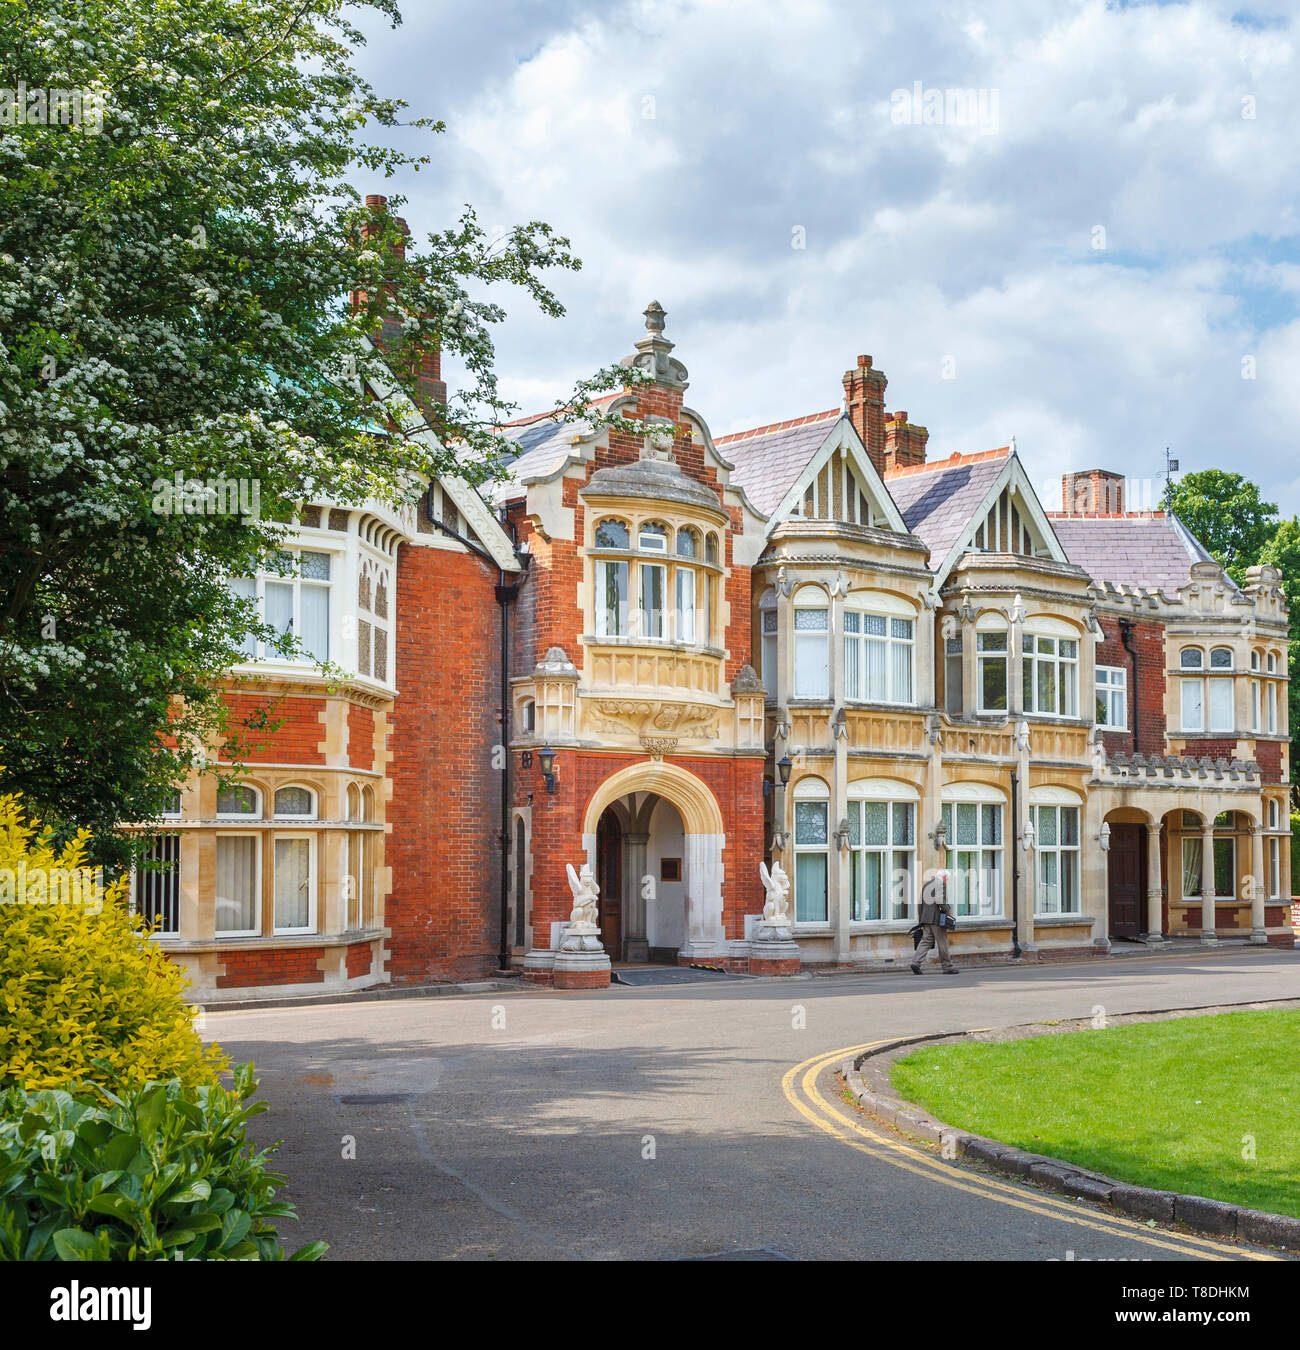 Entrance to the Victorian mansion at Bletchley Park, once the top-secret home of the World War Two Codebreakers, now a leading heritage attraction - Stock Image